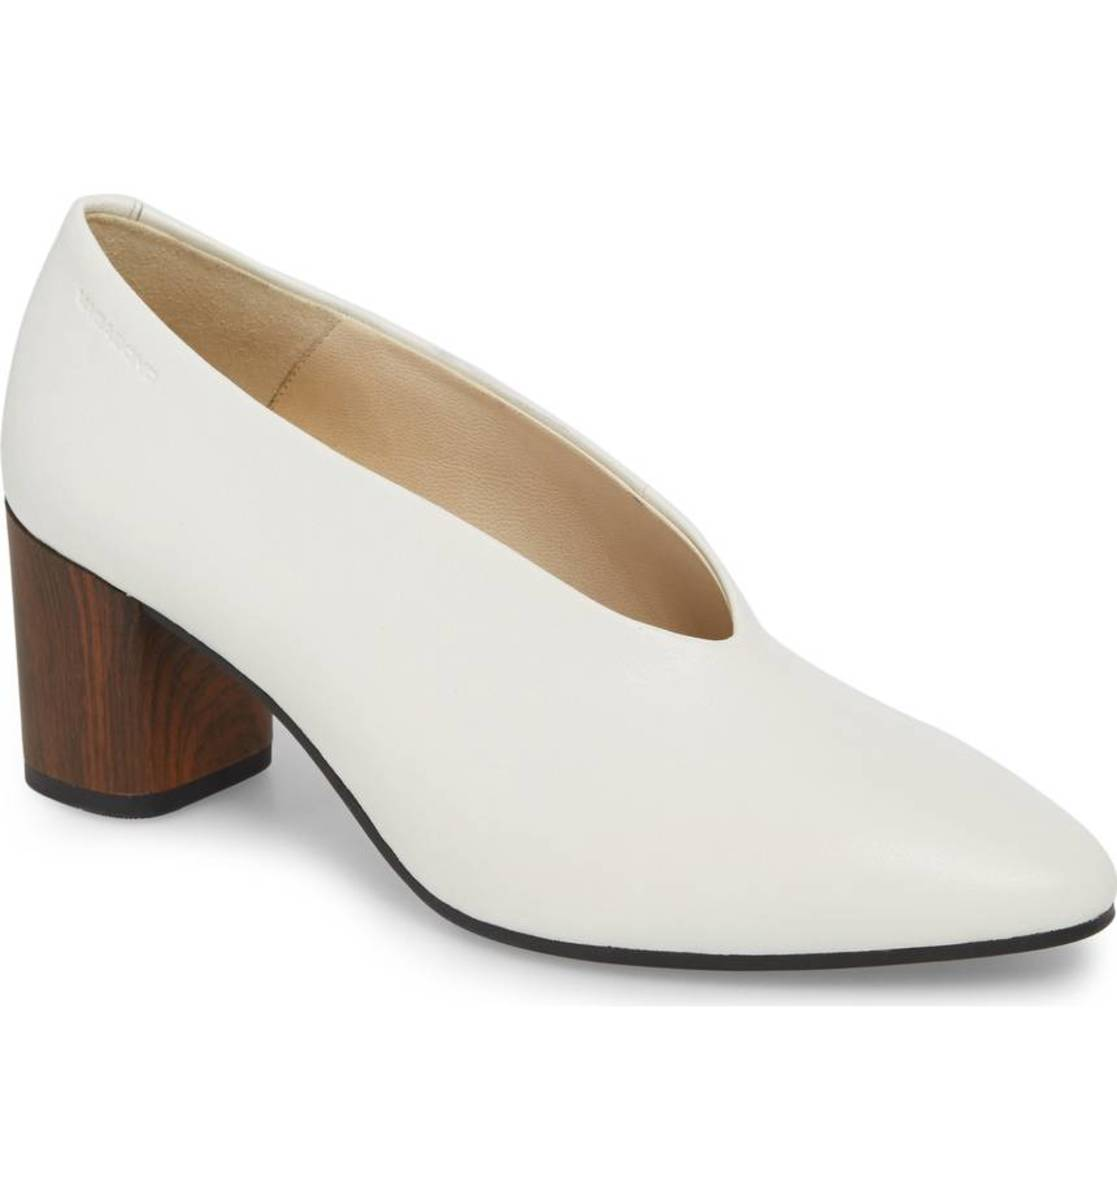 Vagabond Eve Pump, $140, available at Nordstrom.